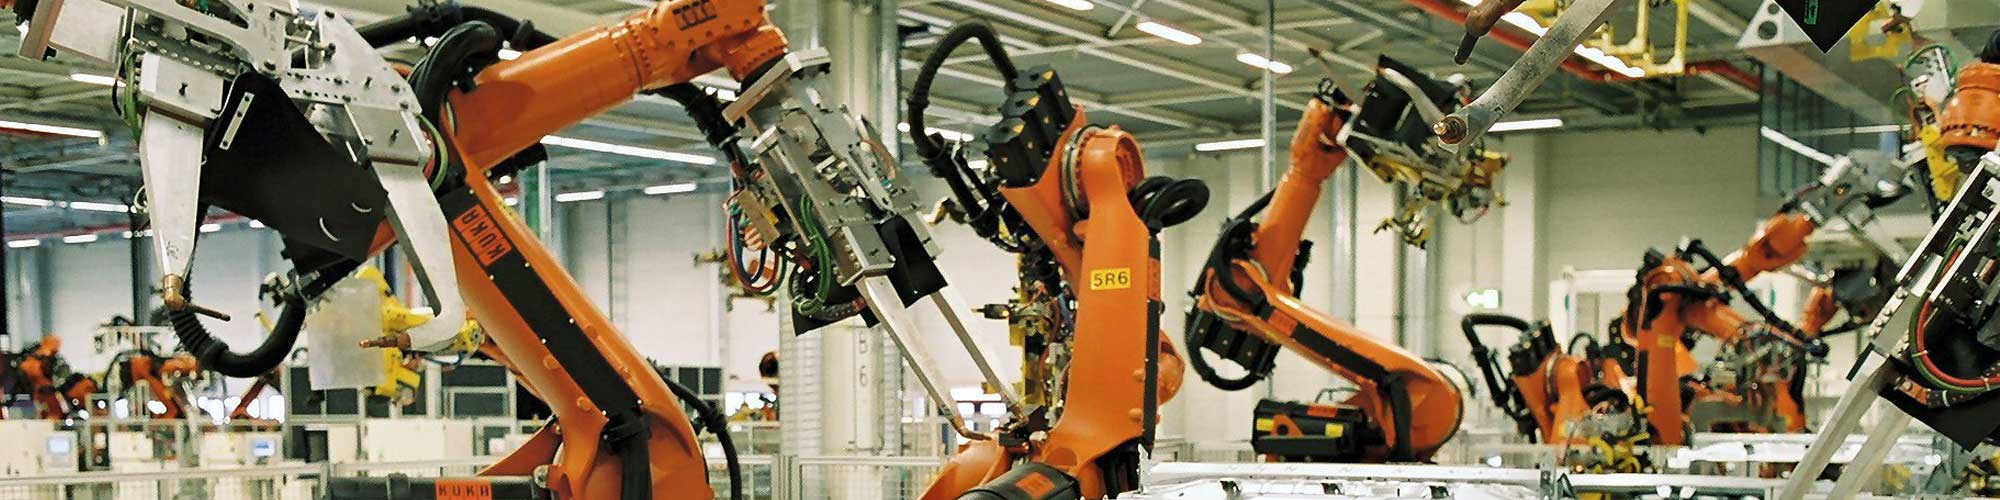 The robots among us: automated labour - Curious